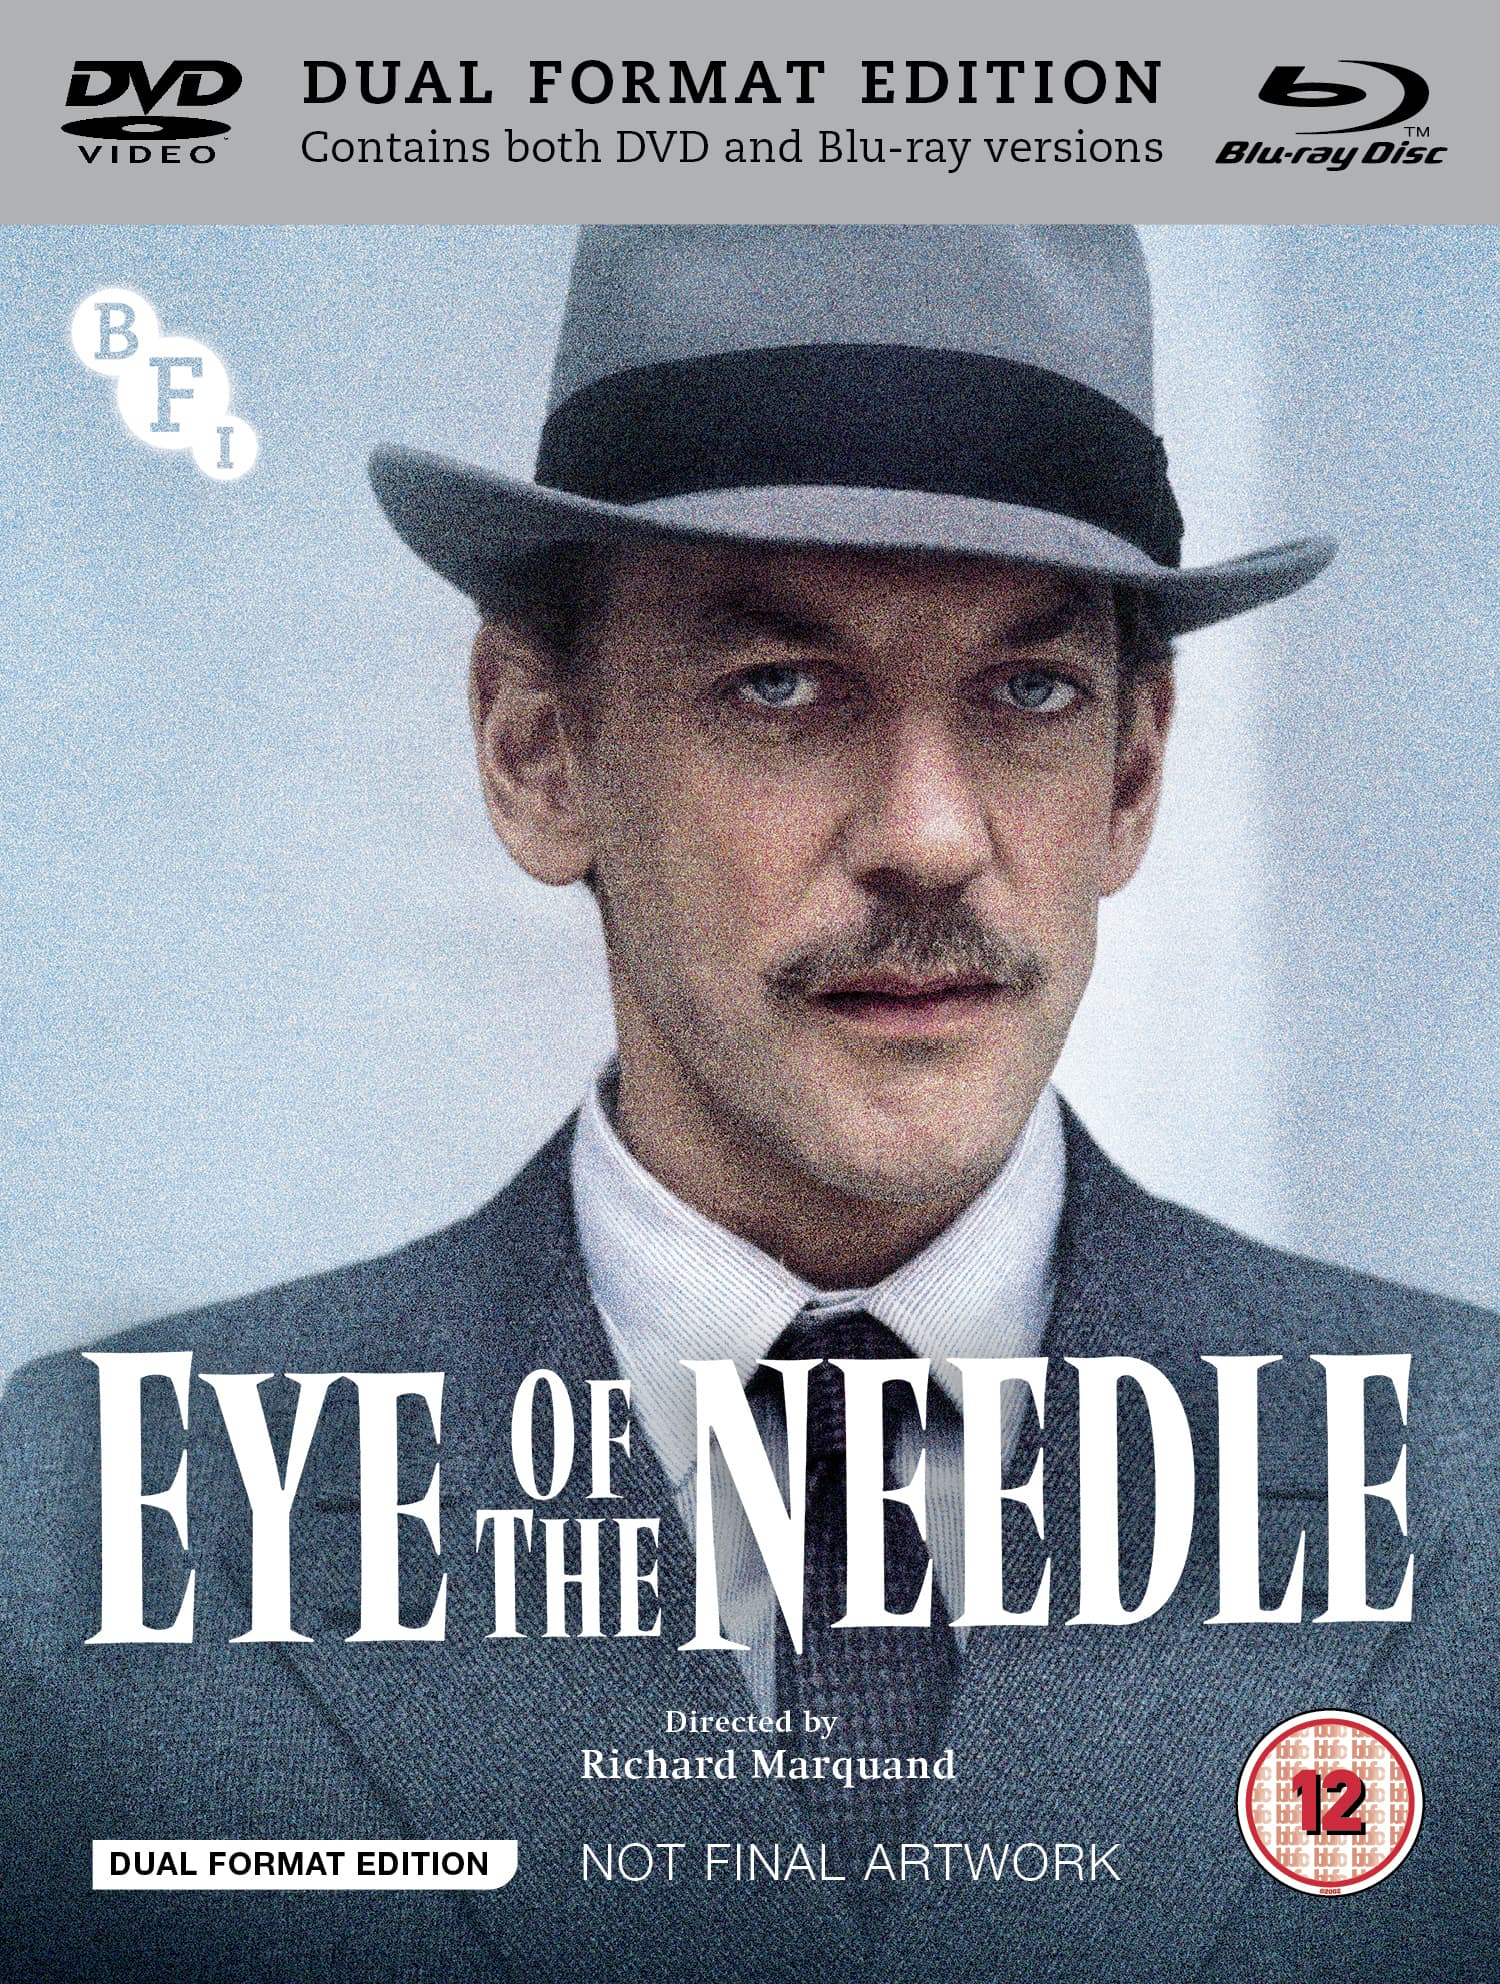 Buy PRE-ORDER Eye of the Needle (Dual Format Edition)